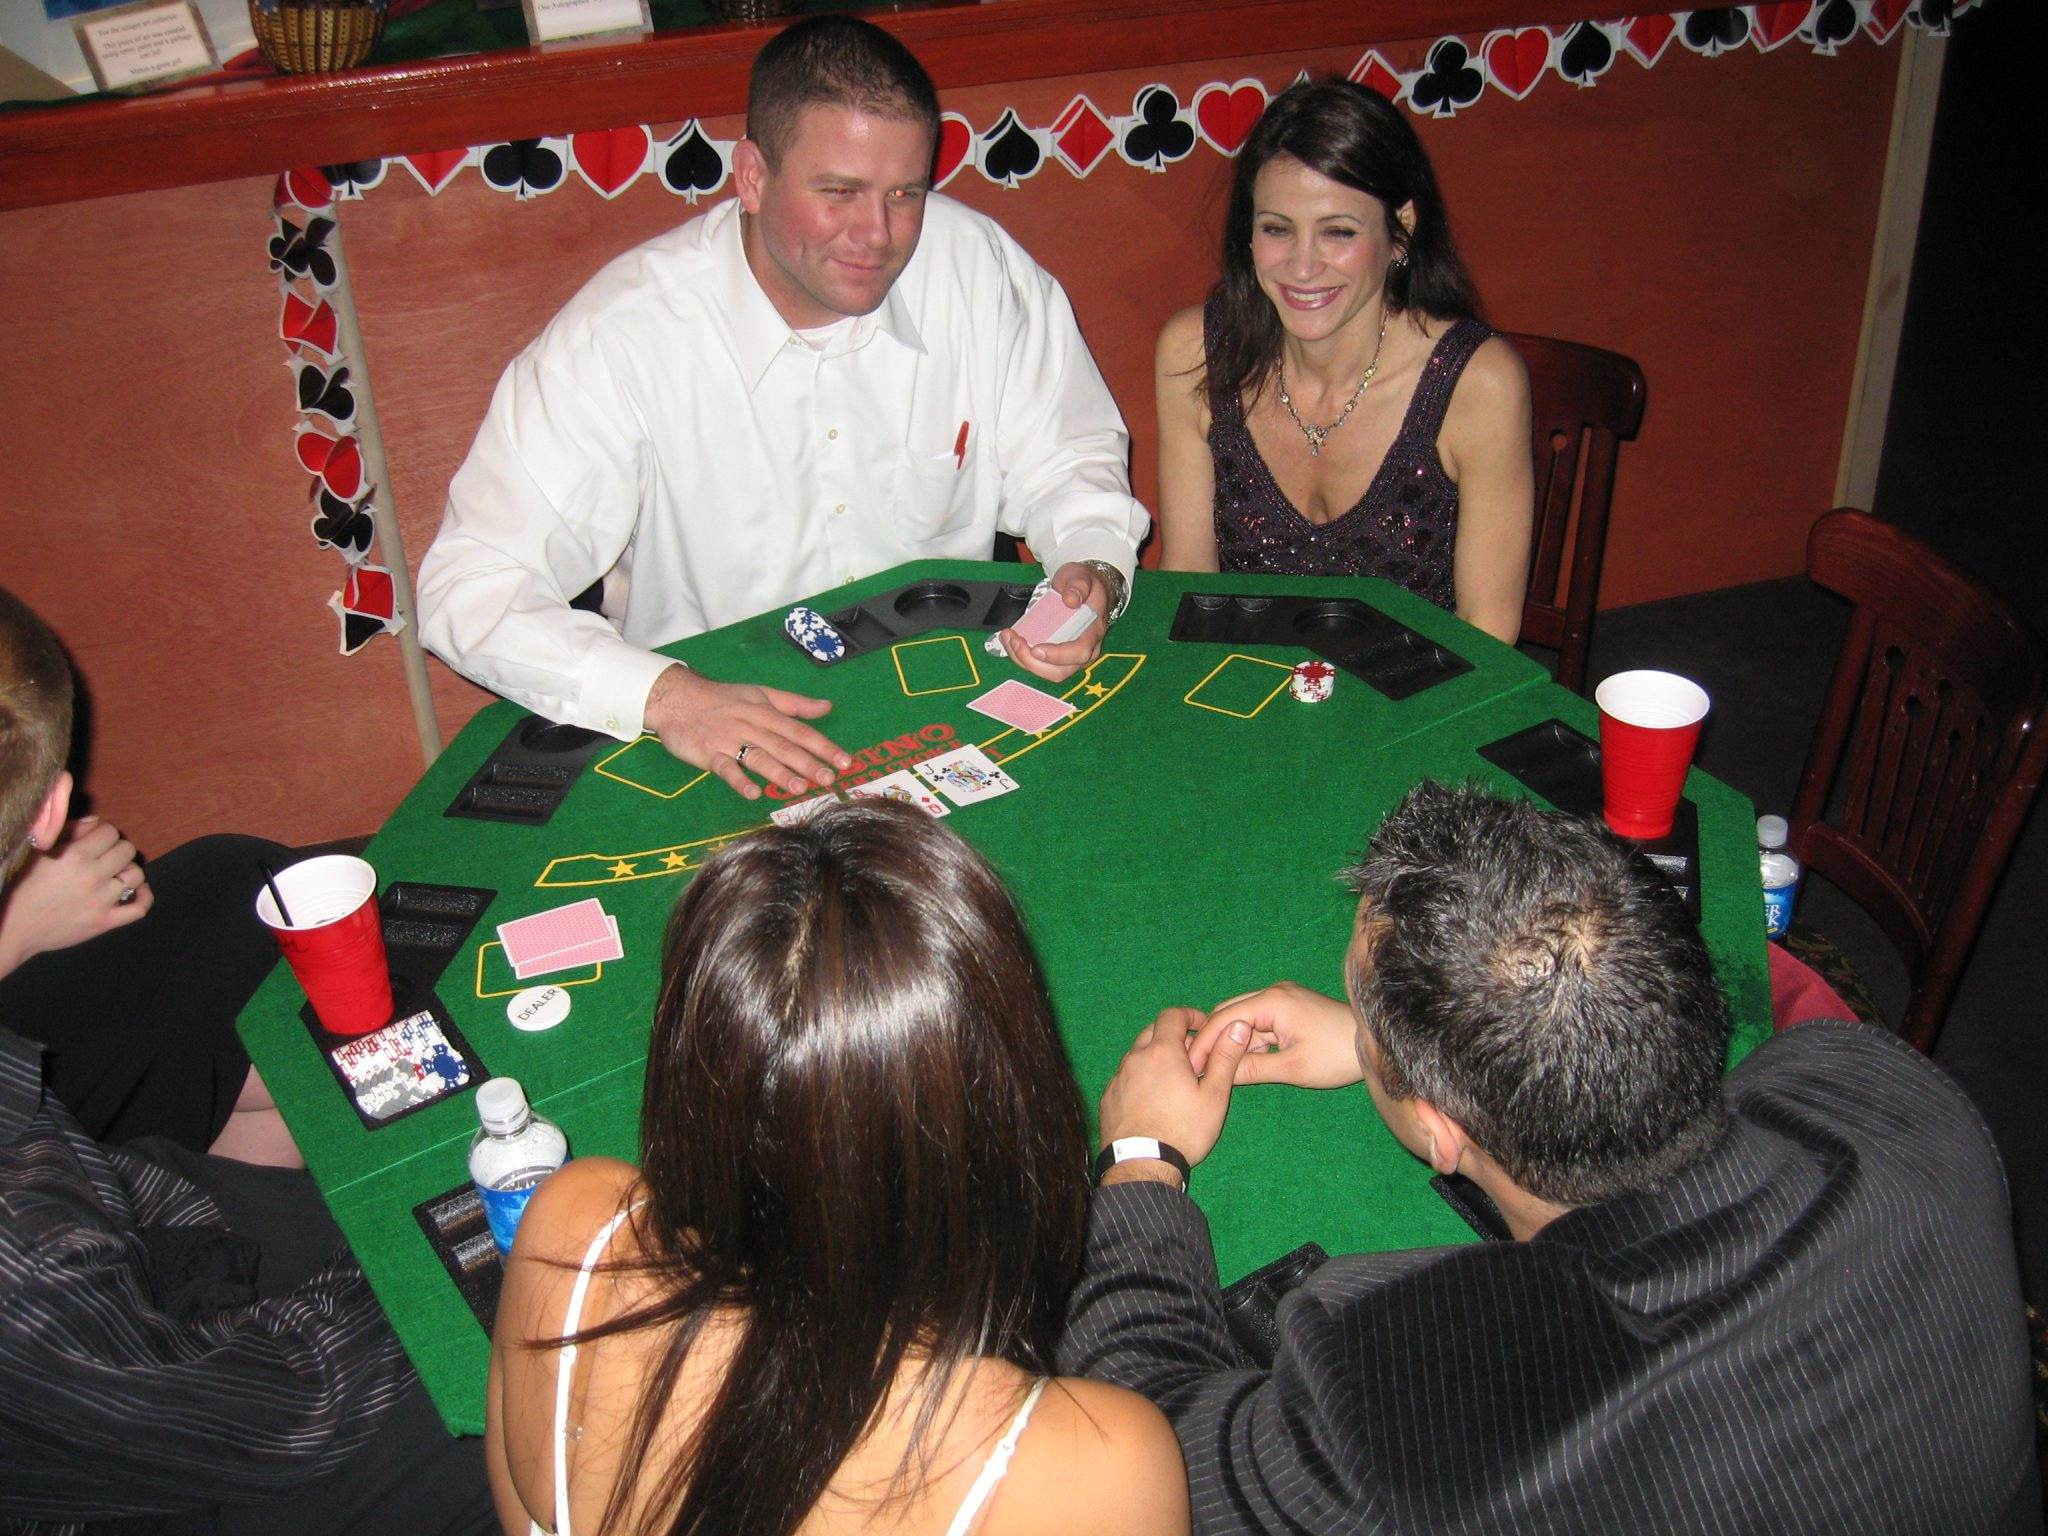 merit casino texas holdem